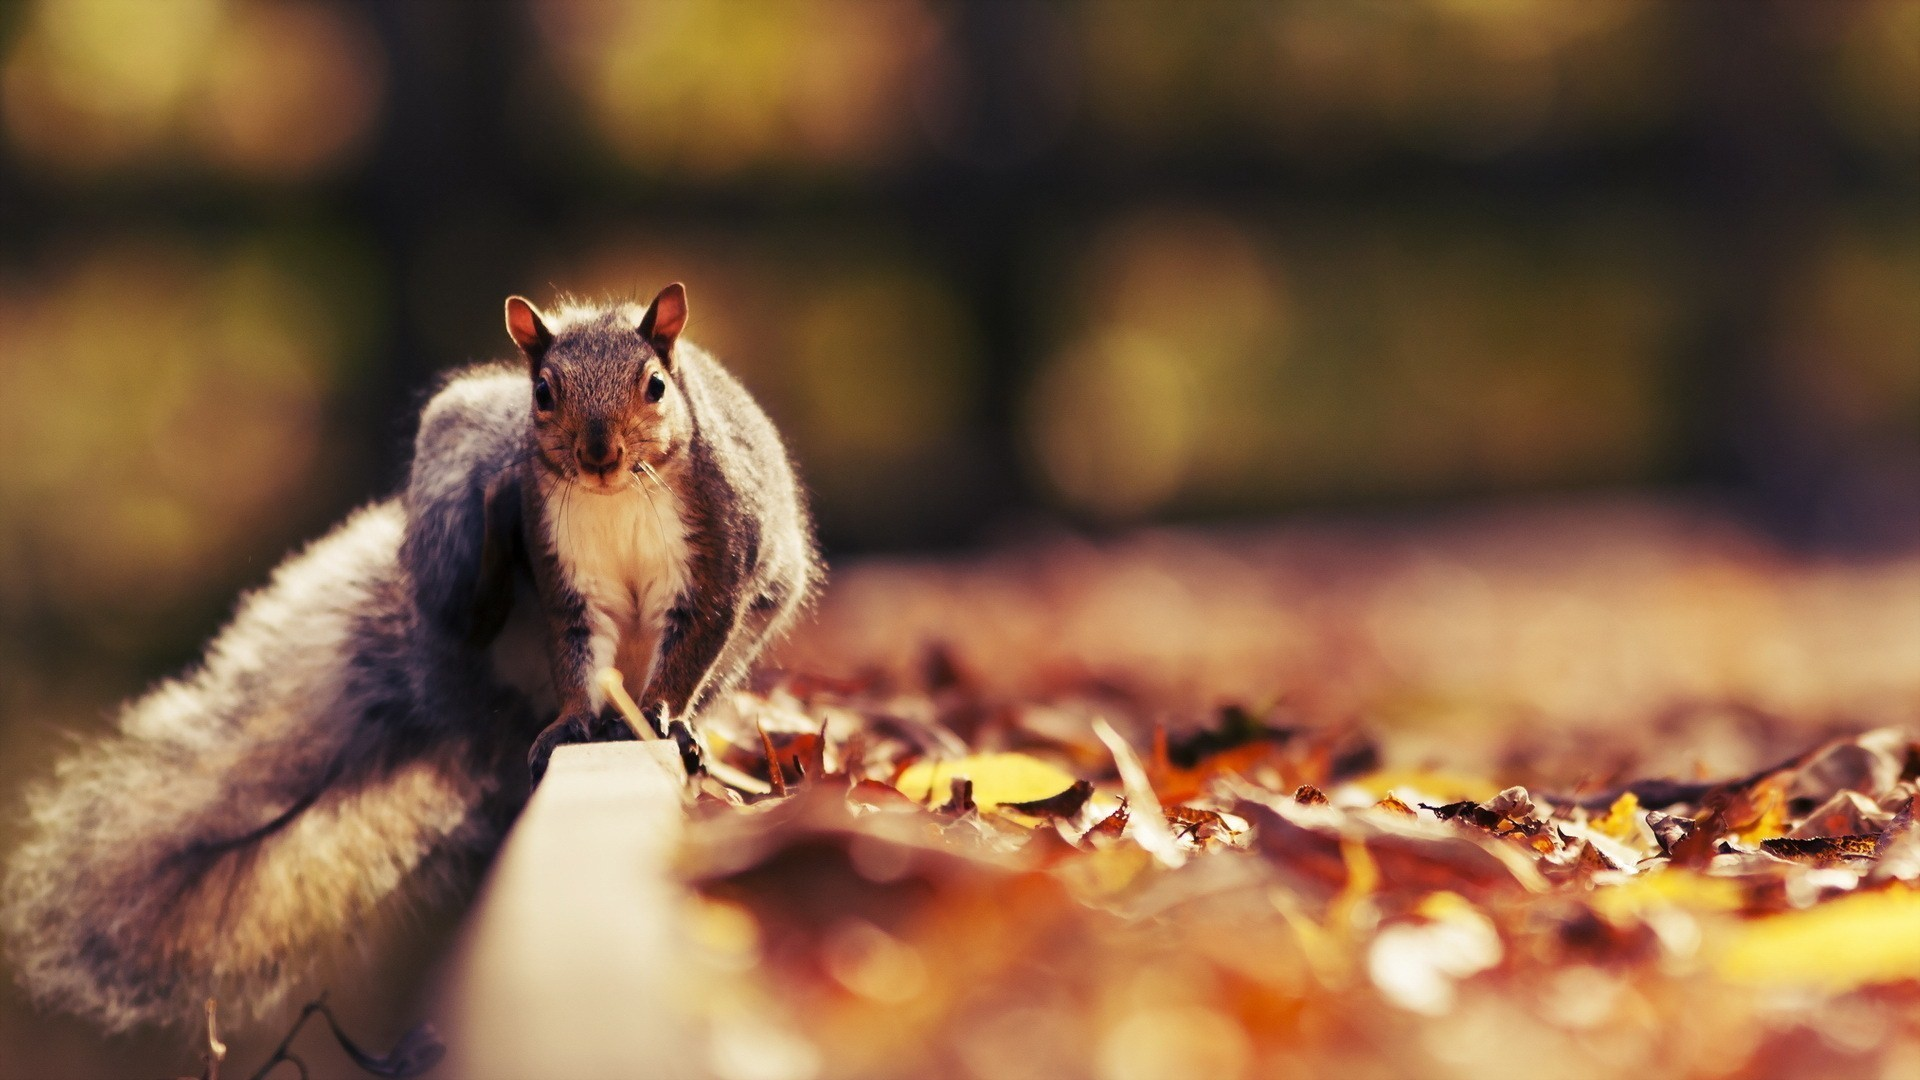 General 1920x1080 animals squirrel leaves fallen leaves